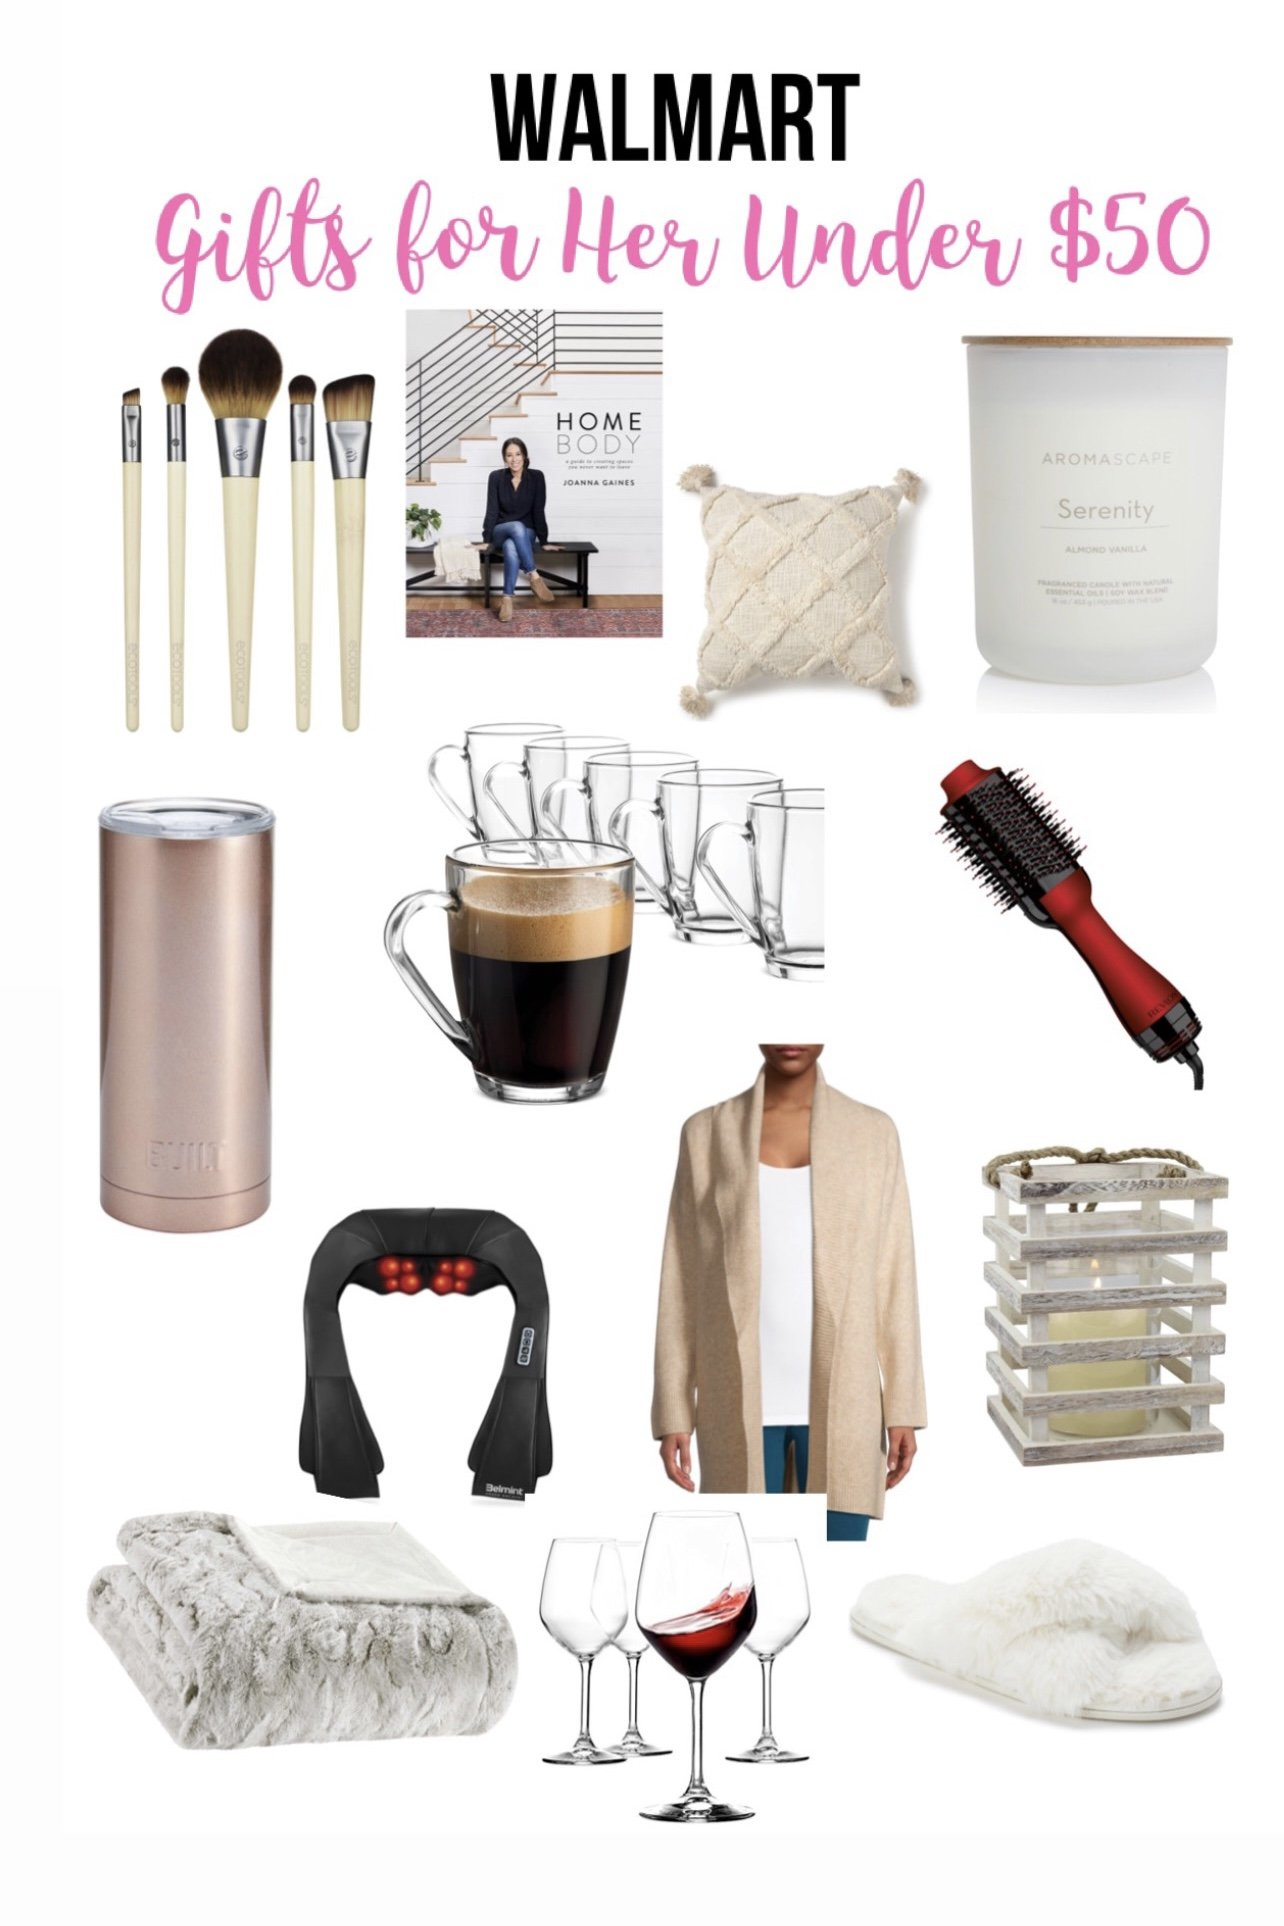 Under $50 Gifts for Her this Christmas